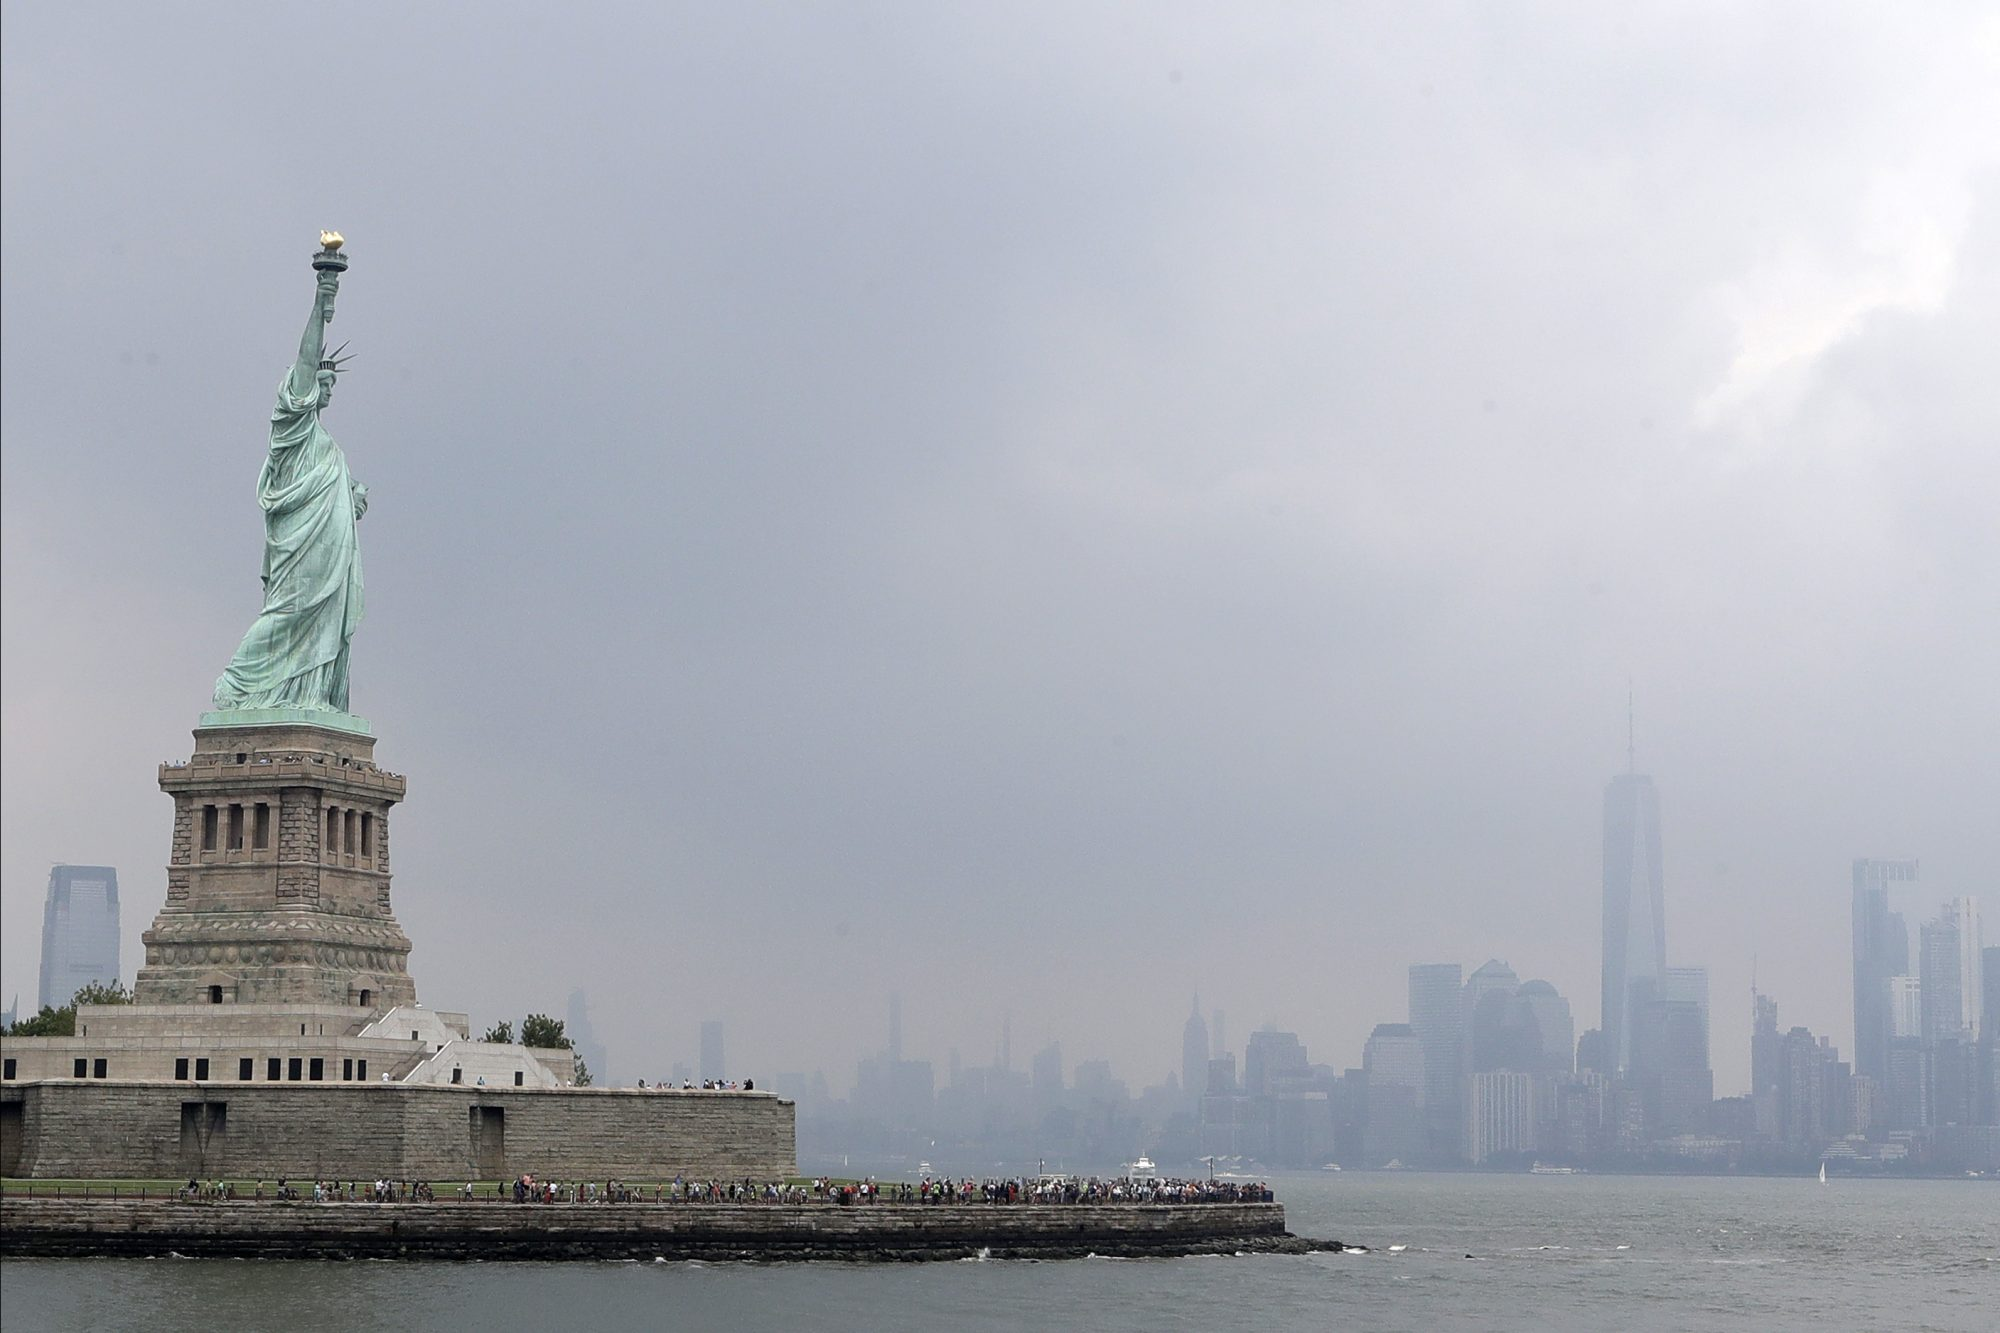 Do you know the whole Statue of Liberty poem? Listen to what Emma Lazarus wrote